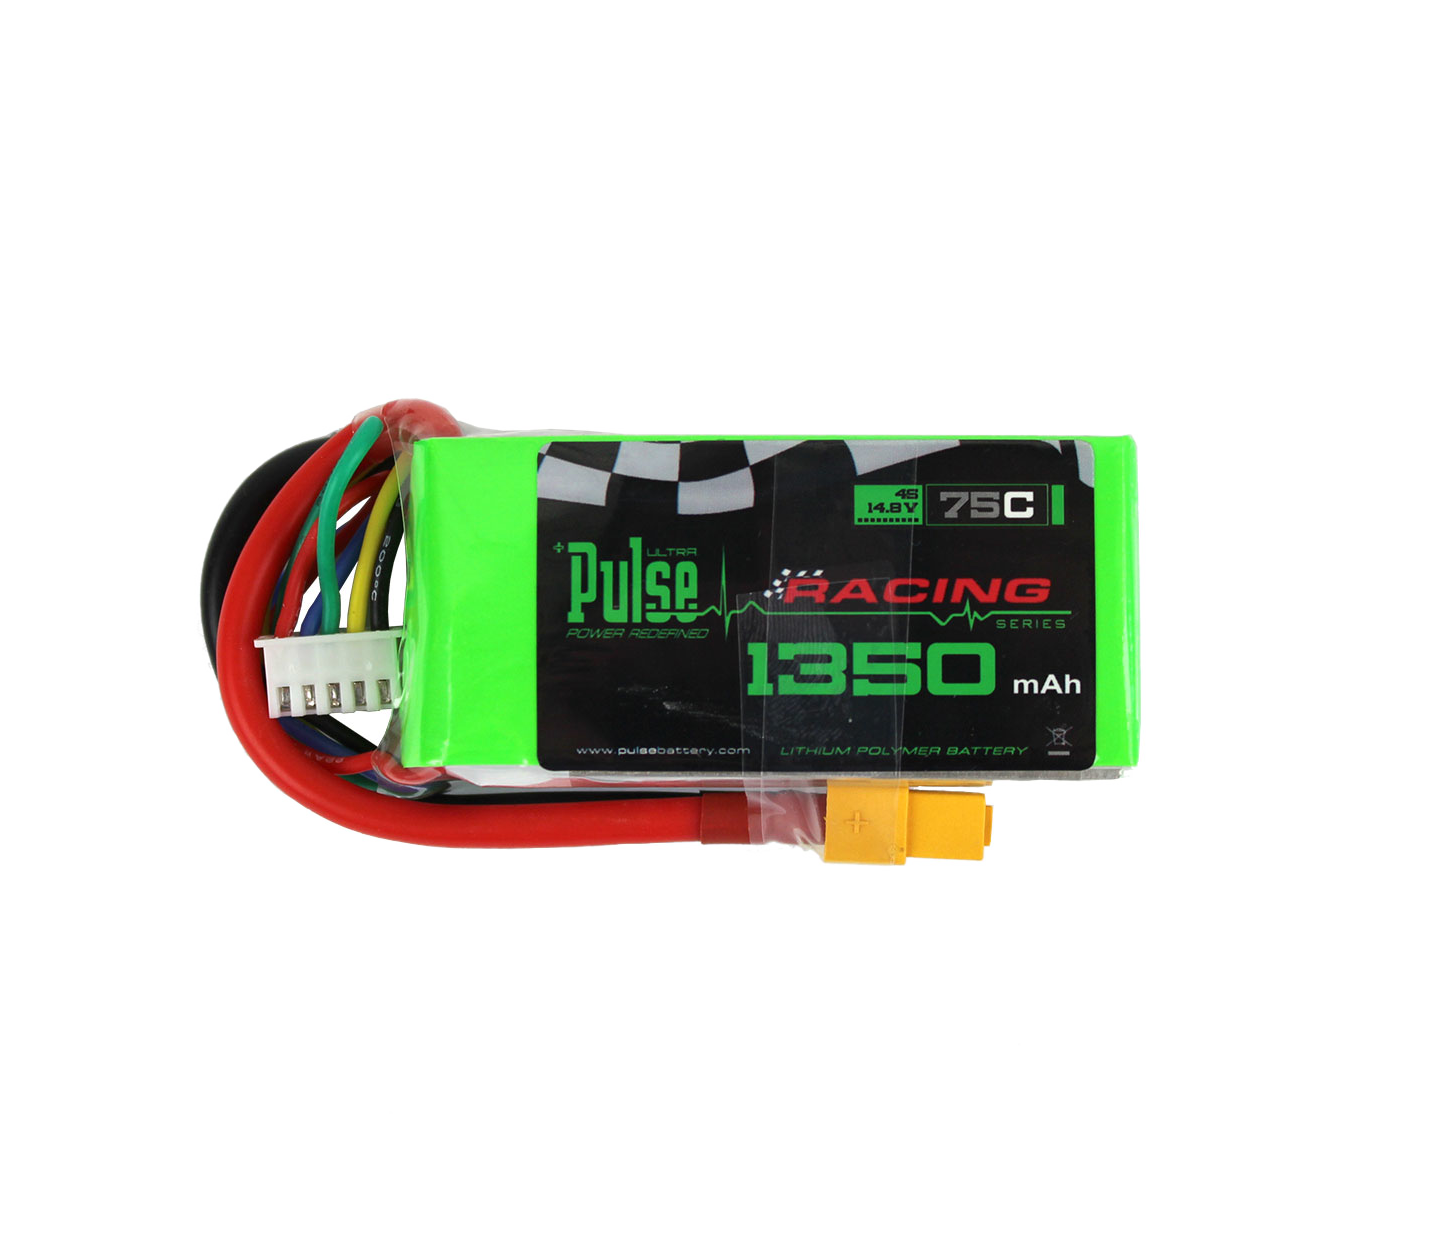 Pulse Neo 1350Mah 4S 14.8V 100C - Fpv Racing / Extreme Series Lipo Battery Battery